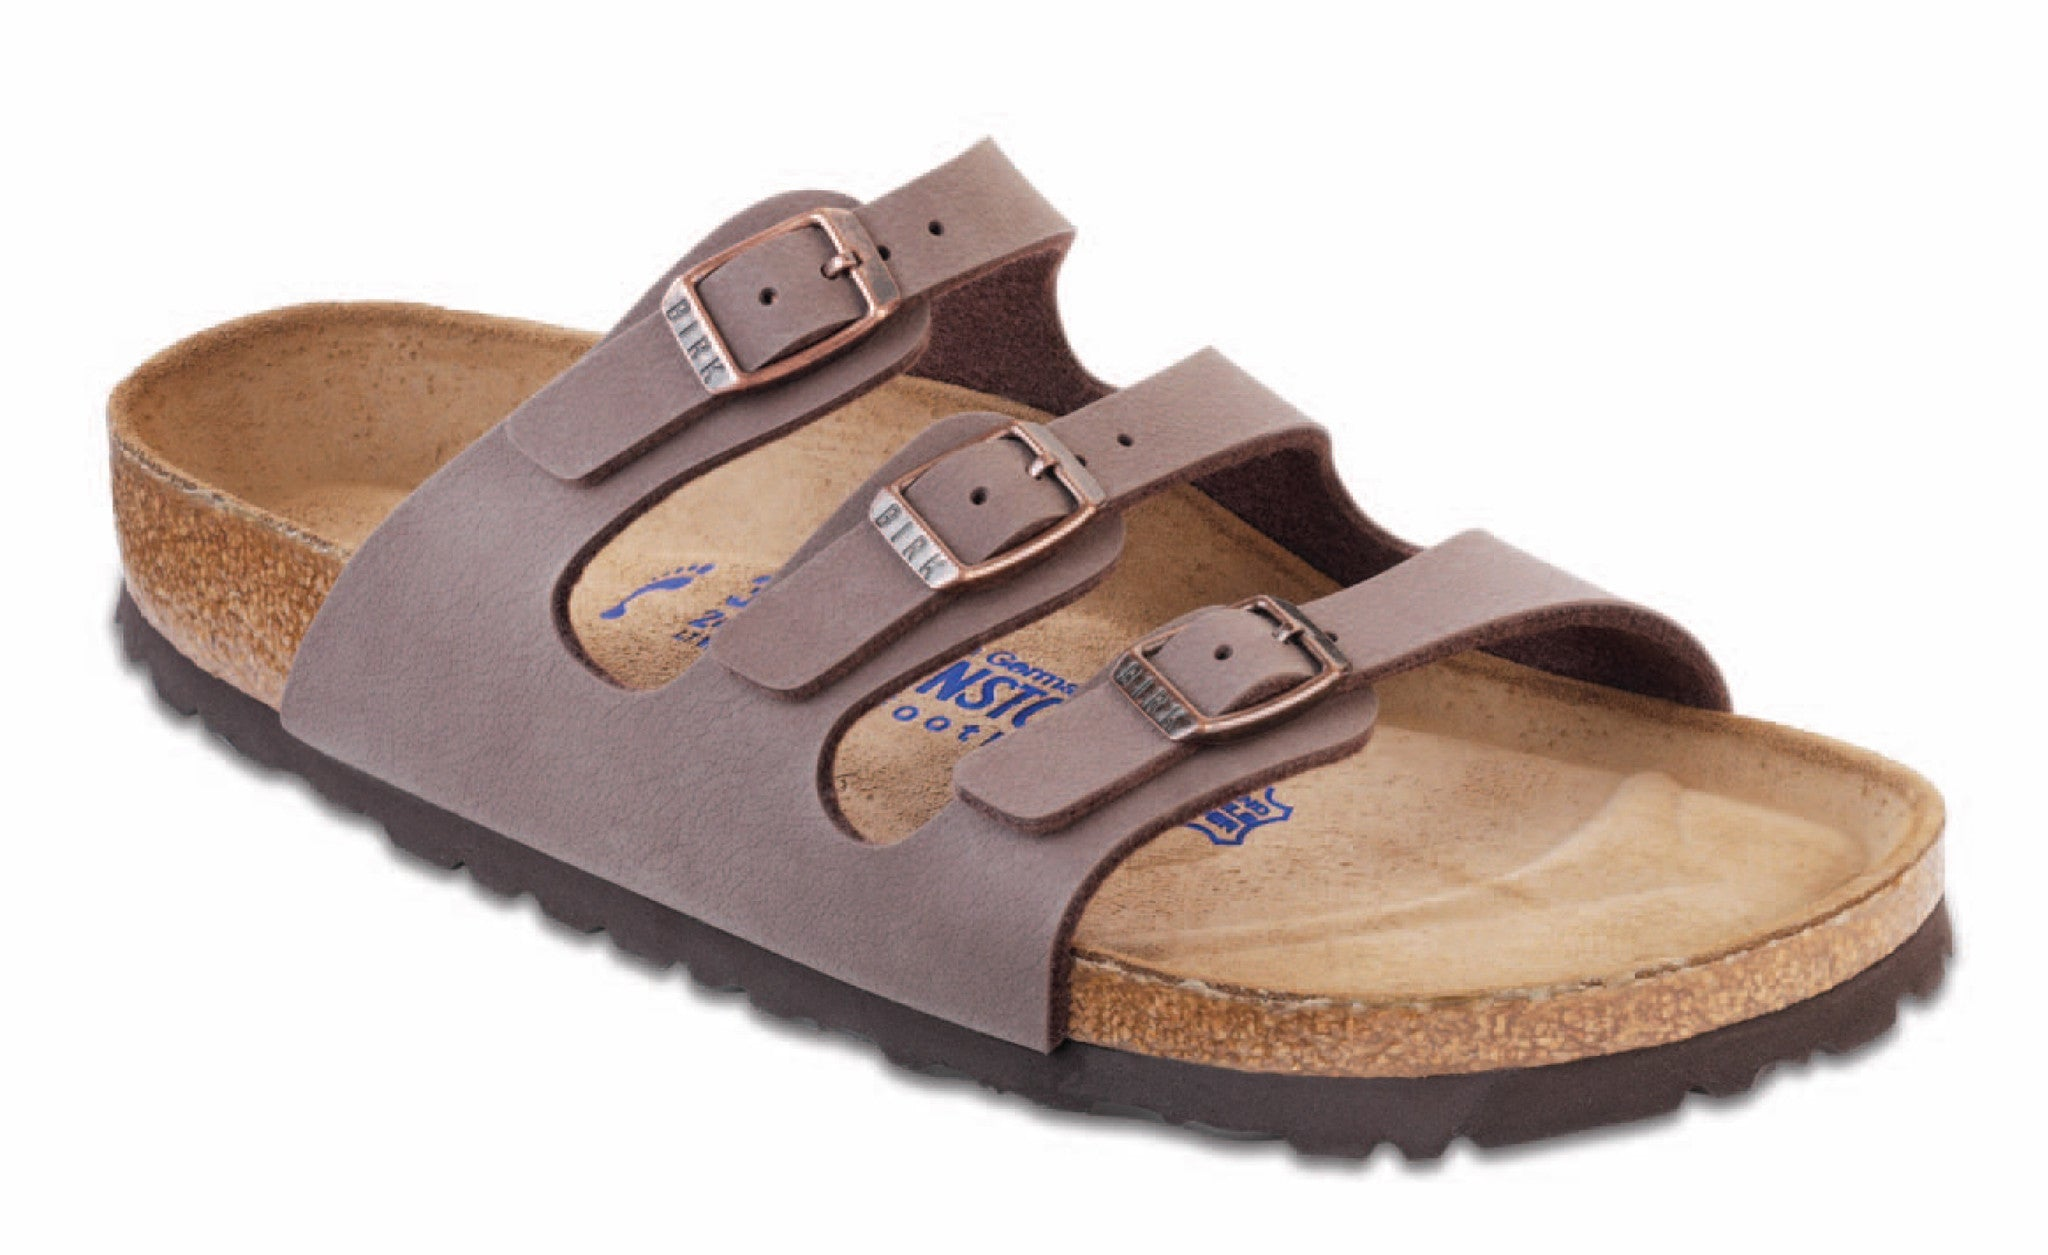 Birkenstock Women's Florida Soft Foot Bed BirkiBuc in Mocha